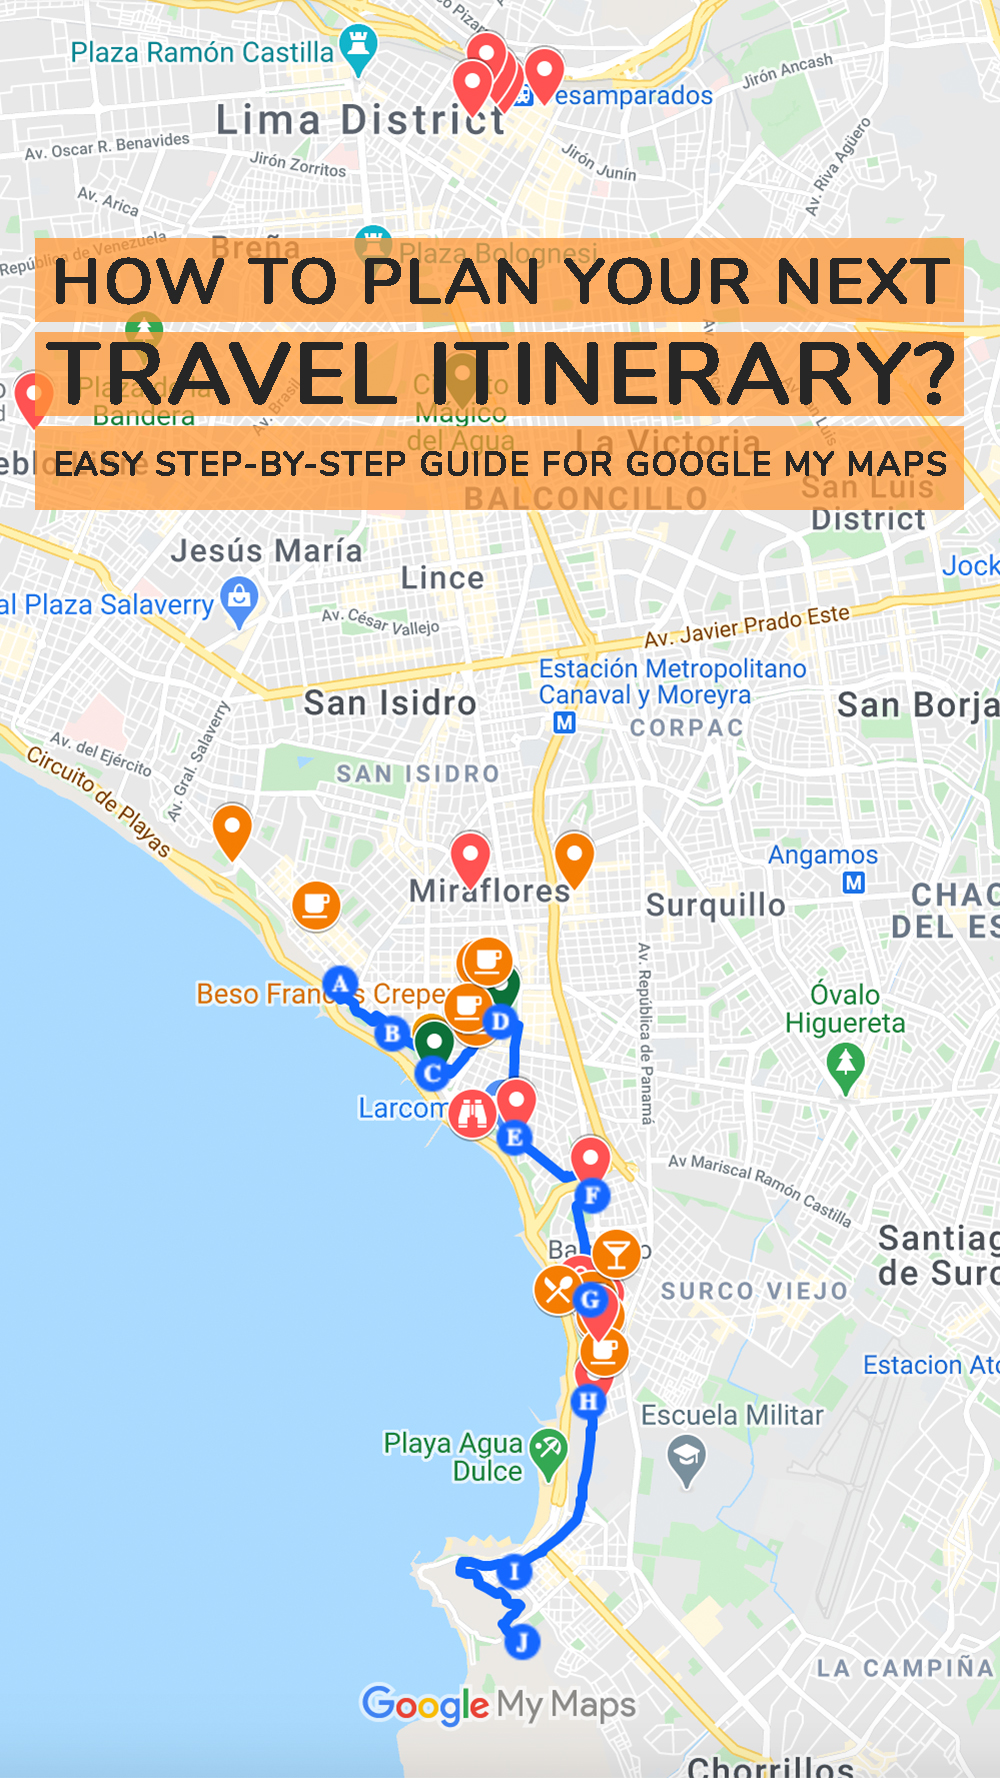 How to plan your next travel itinerary? Easy step-by-step guide for Google My Maps | Aliz's Wonderland